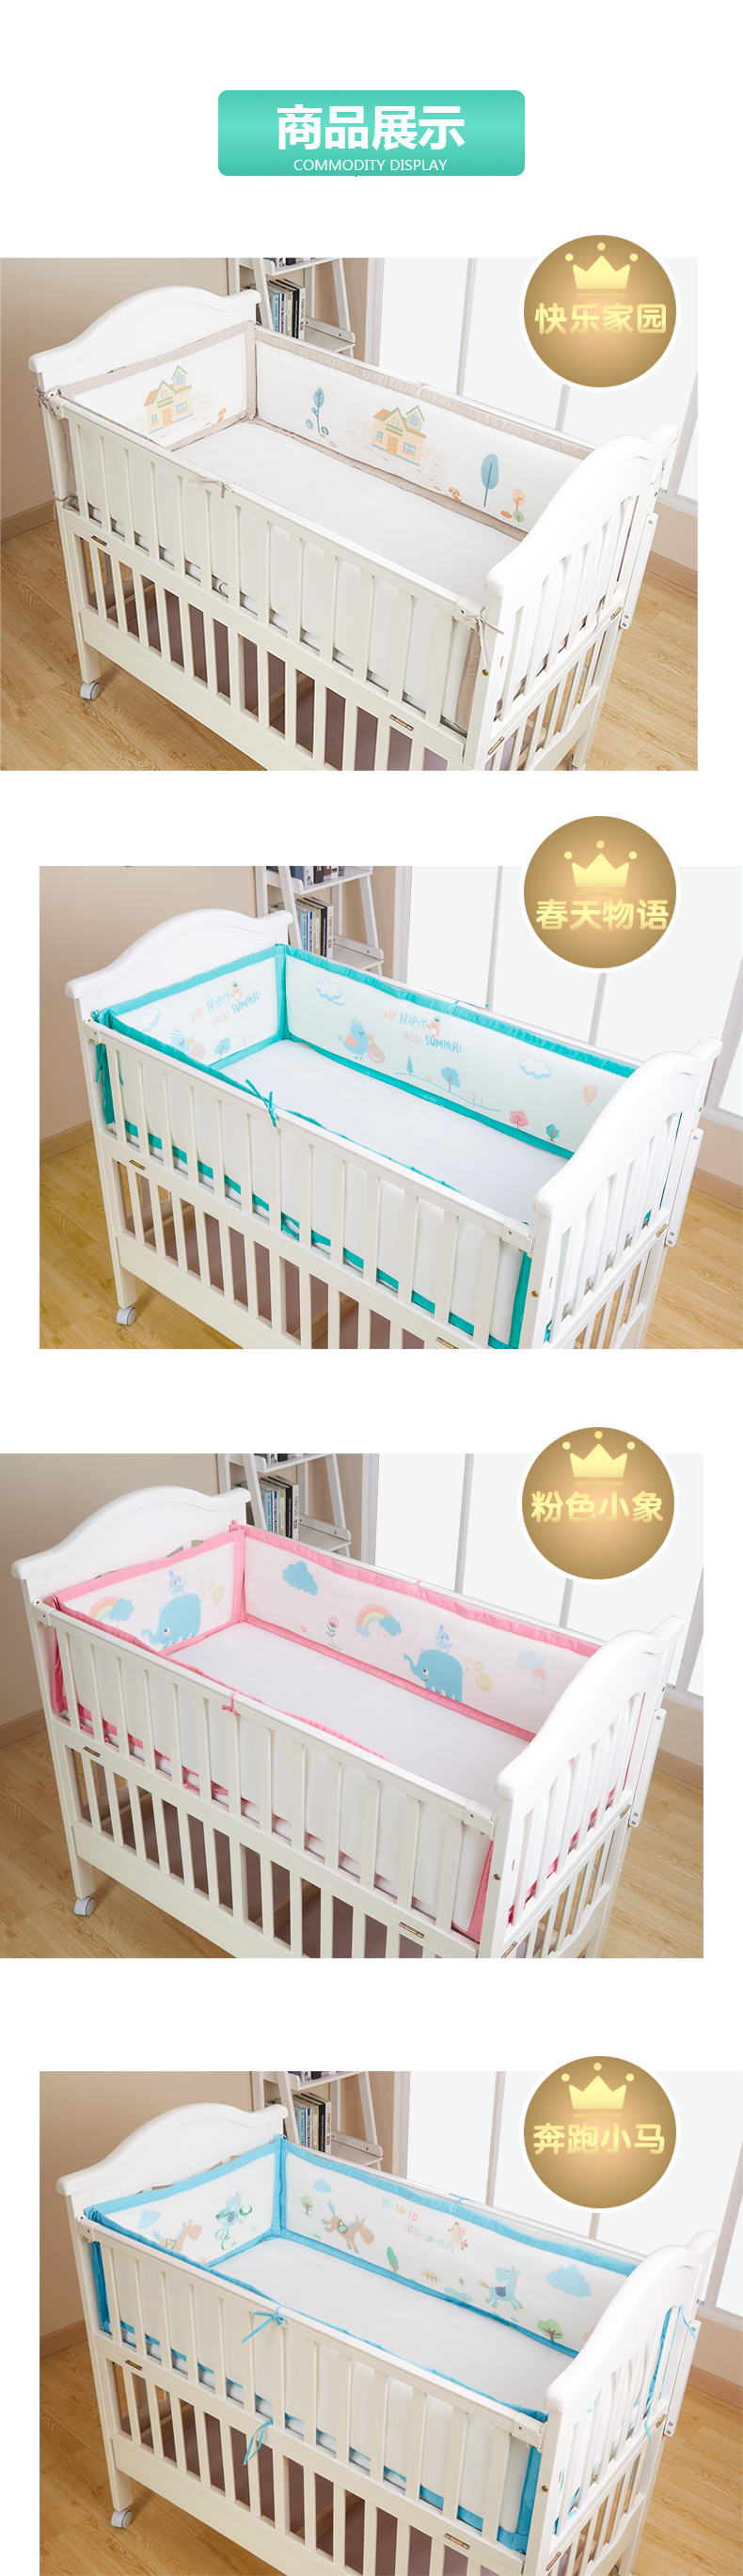 4pcs//Set Thicken Crib Liner Protector,Machine Washable Removable Baby Crib Bumper,Crib Safety Guard Pad,Crib Bumper Pad,Breathable Crib Bedding Liner.